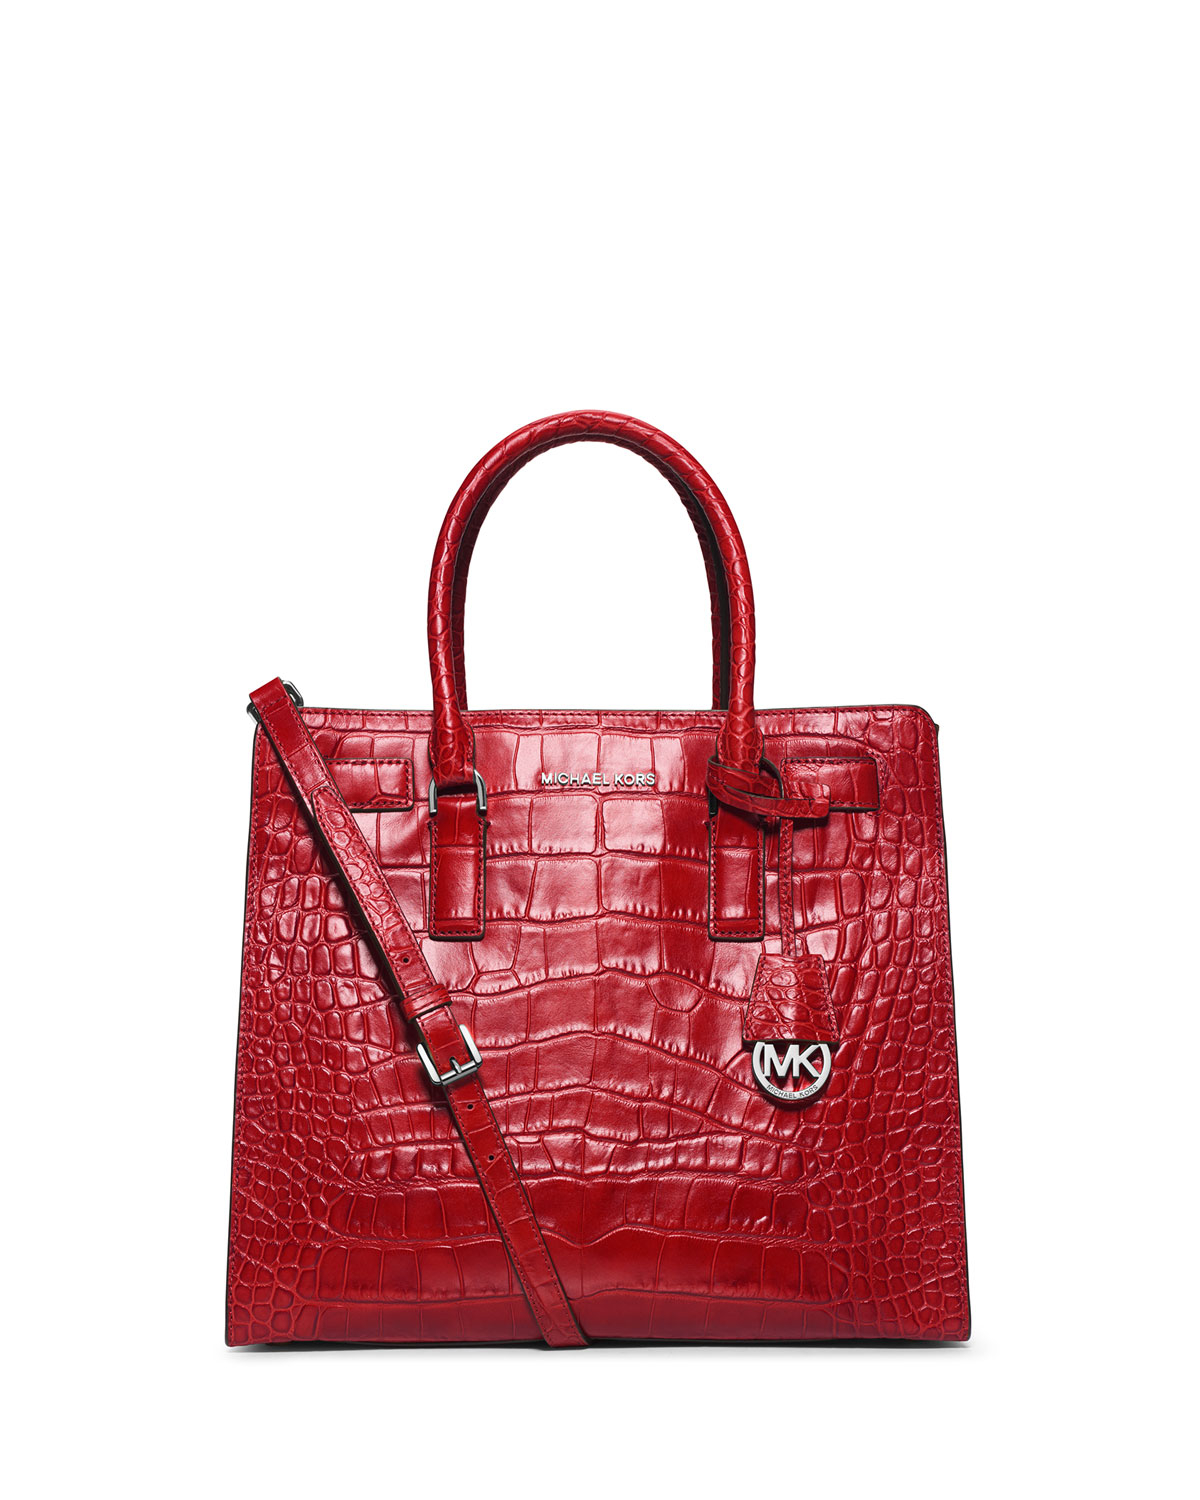 74d049475c17 Gallery. Previously sold at: Neiman Marcus · Women's Michael By Michael  Kors Dillon ...